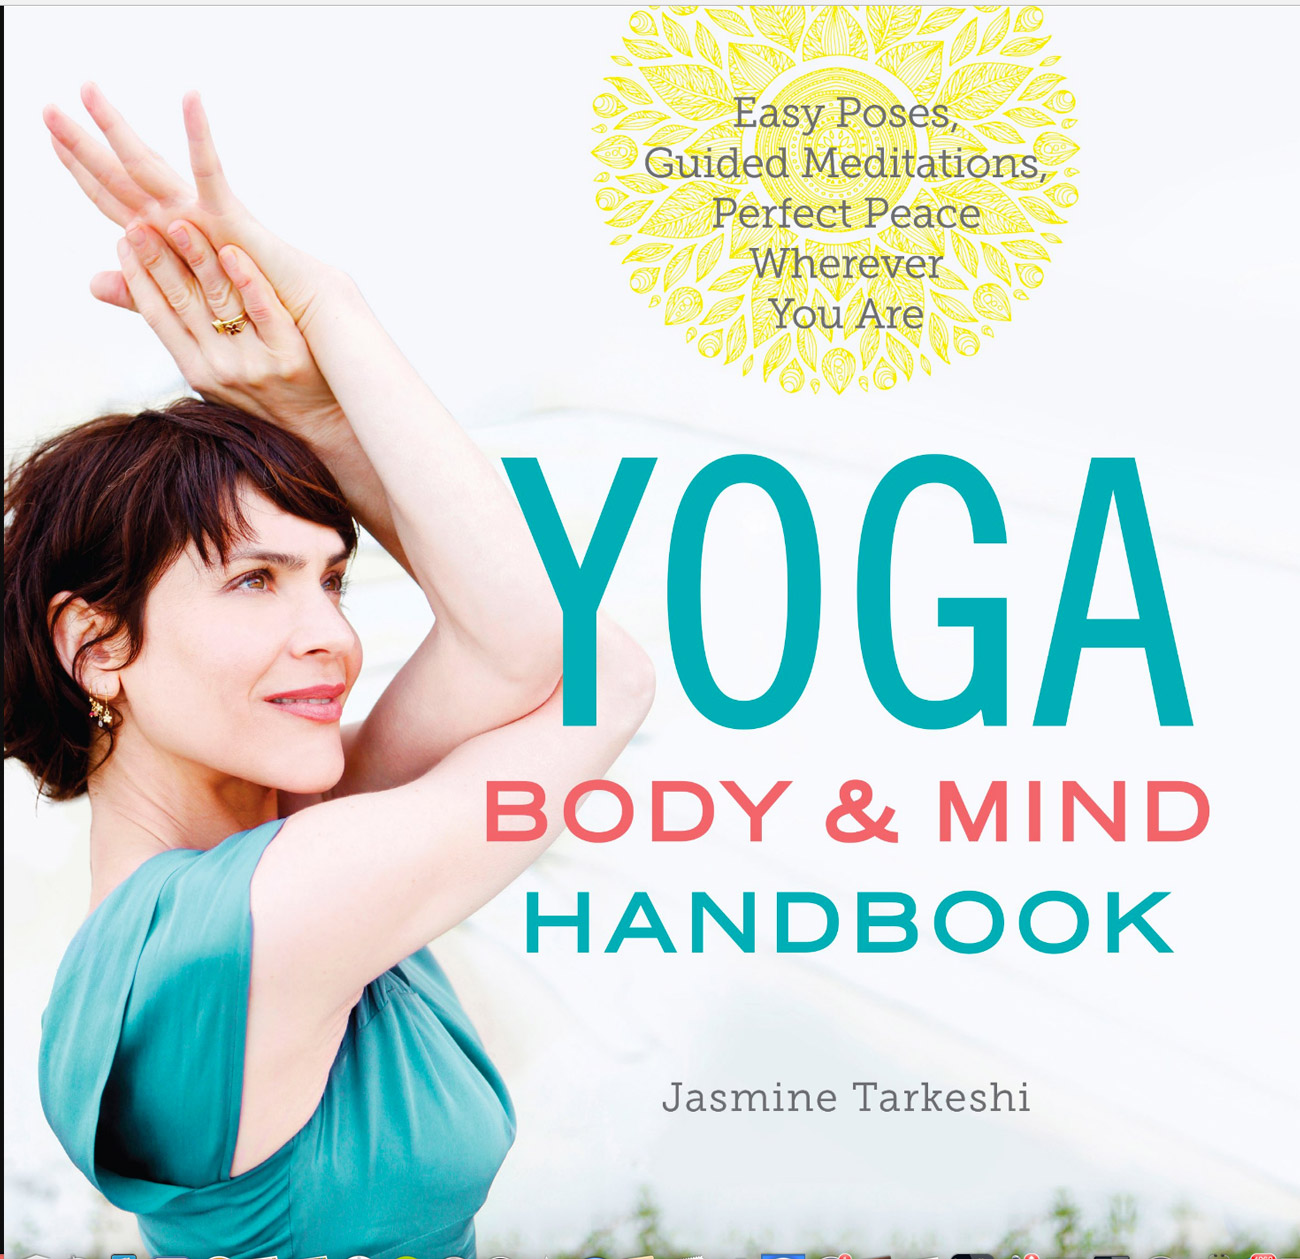 Becca Henry photography - photography for book cover - Yoga body and mind handbook- Yoga photography